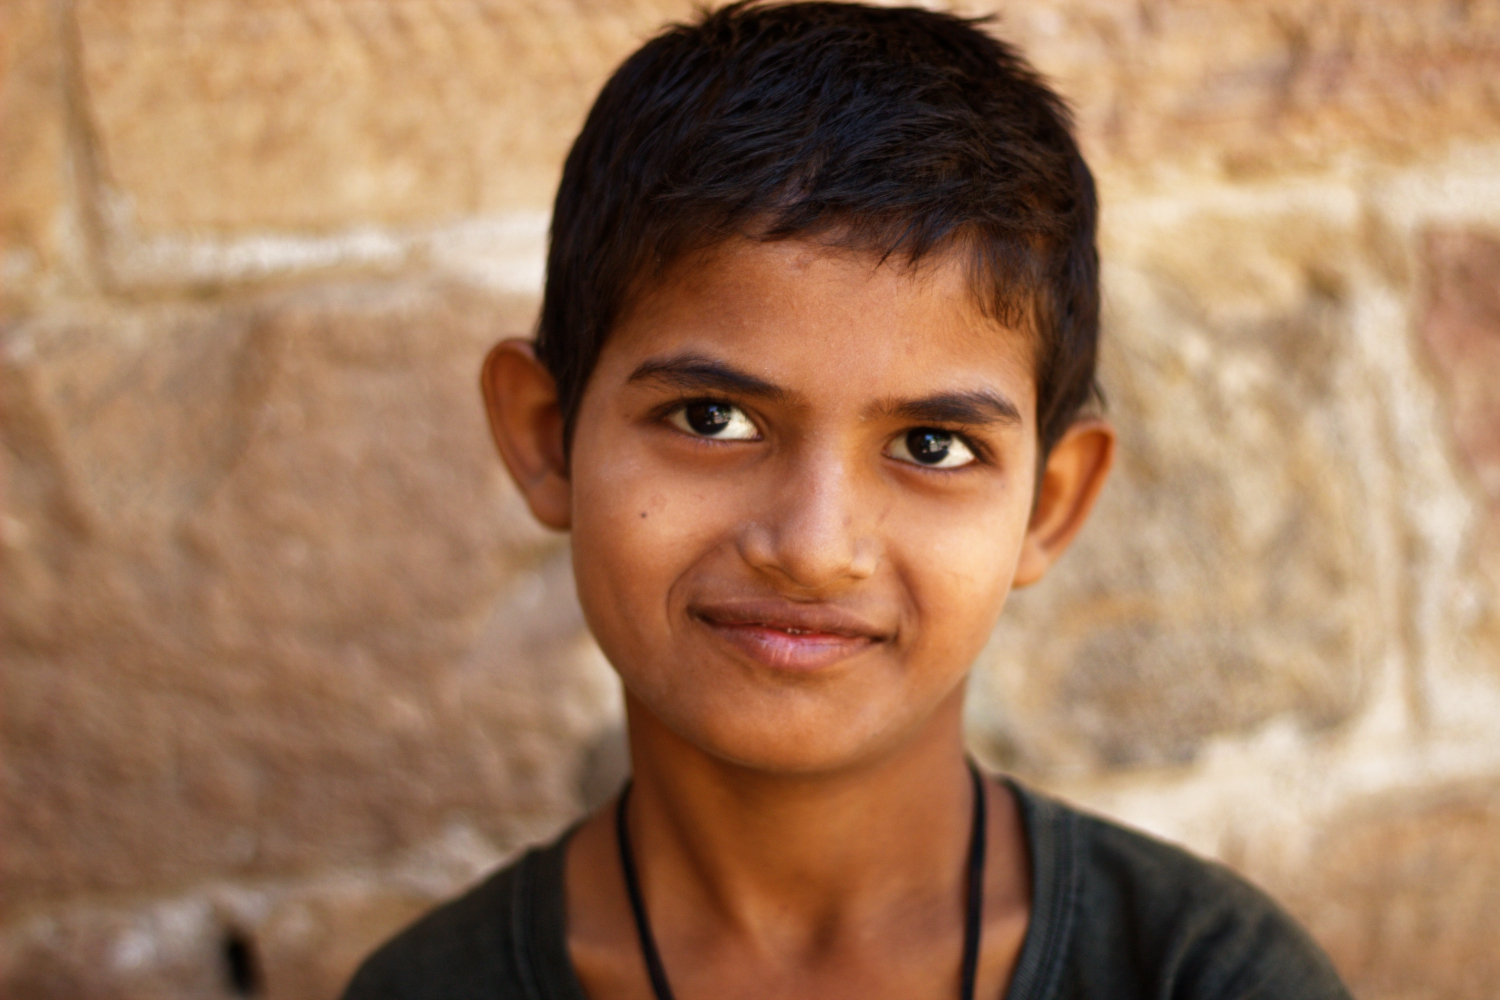 A Kid in Ajmer